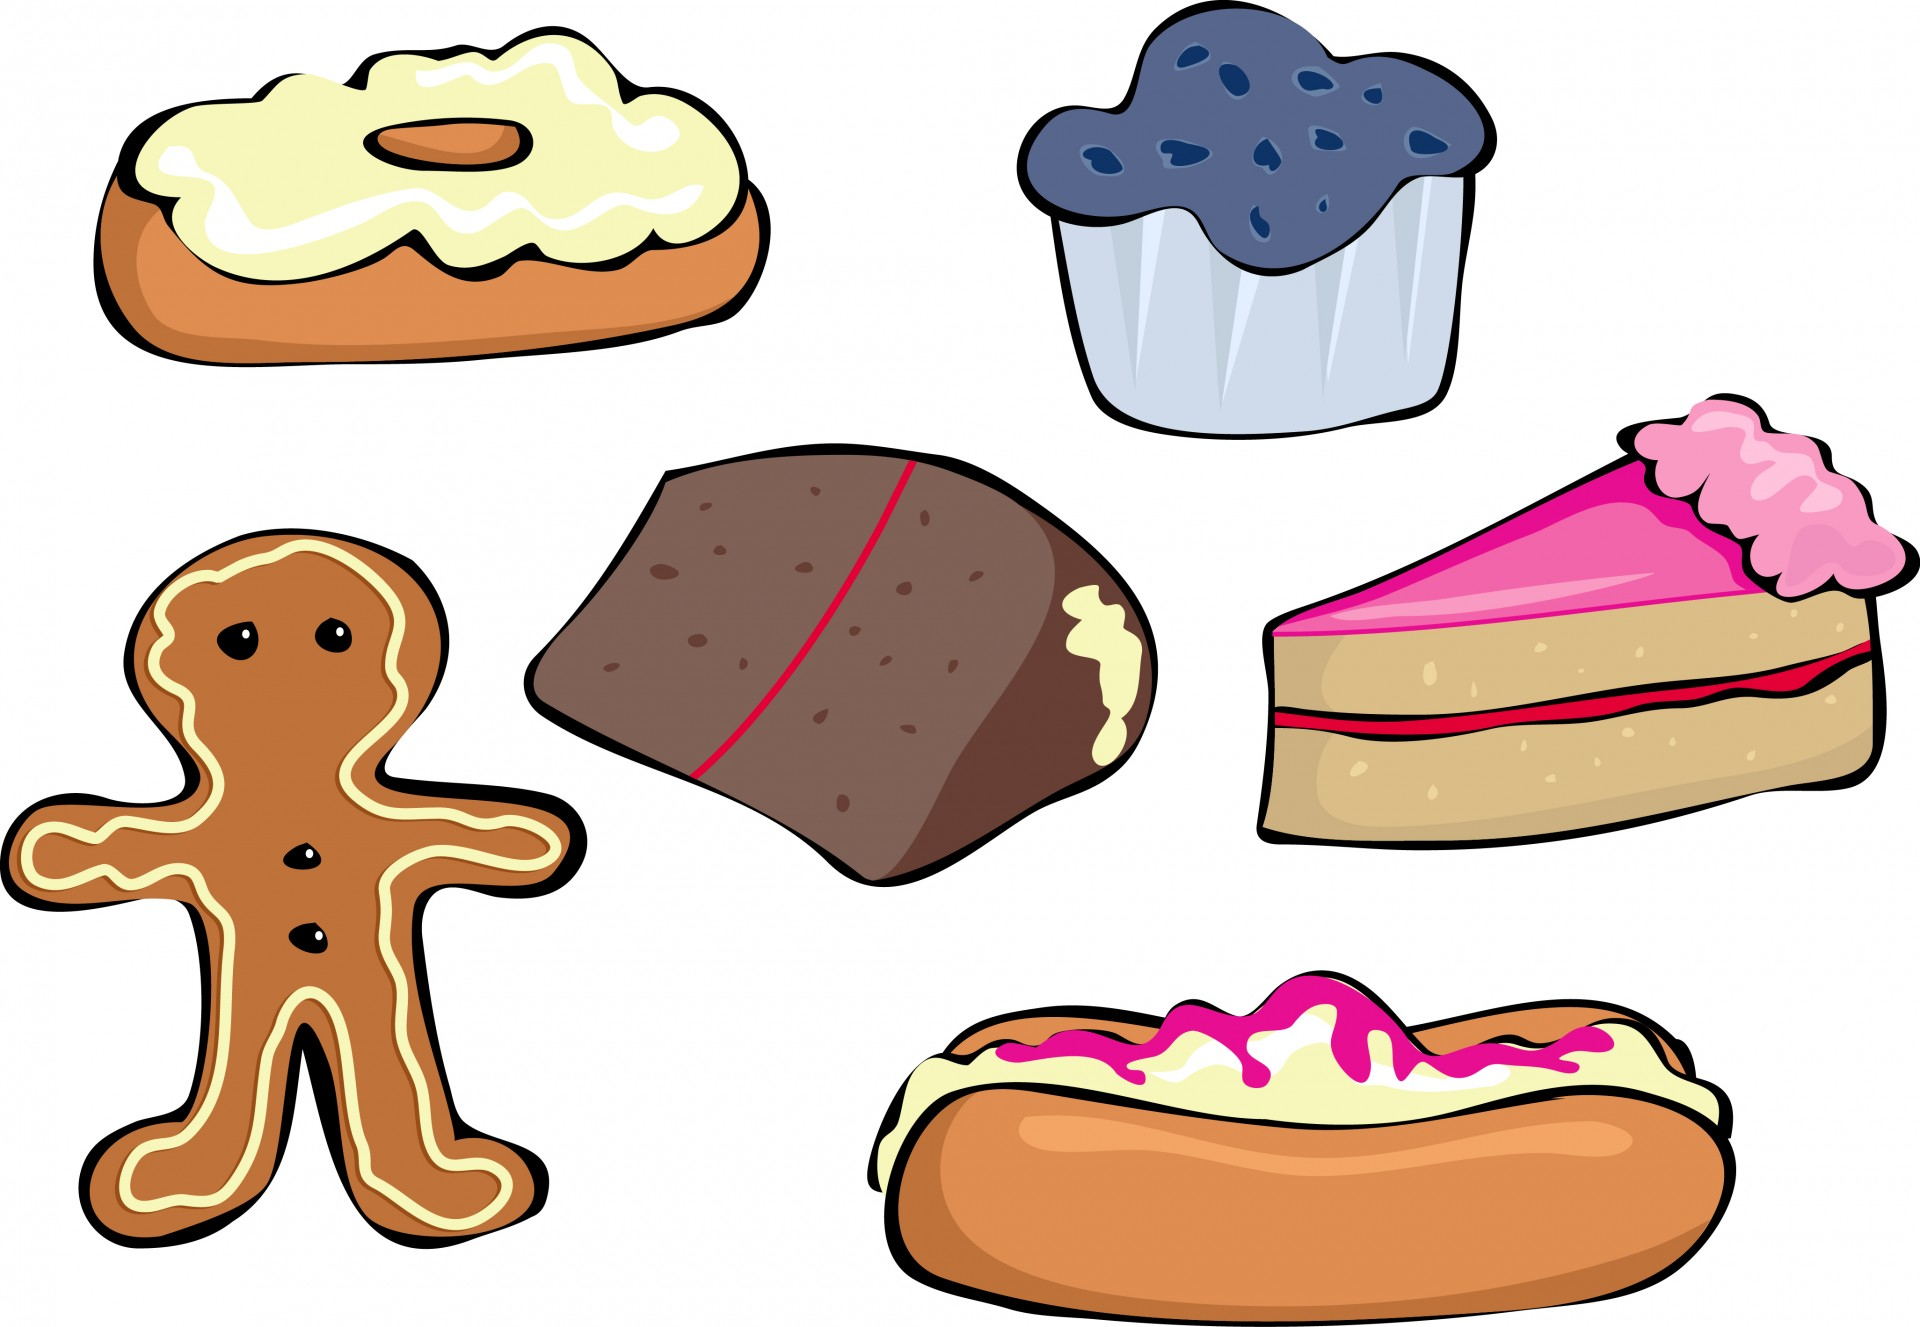 Cakes and buns free. Baked goods clipart baked sweet